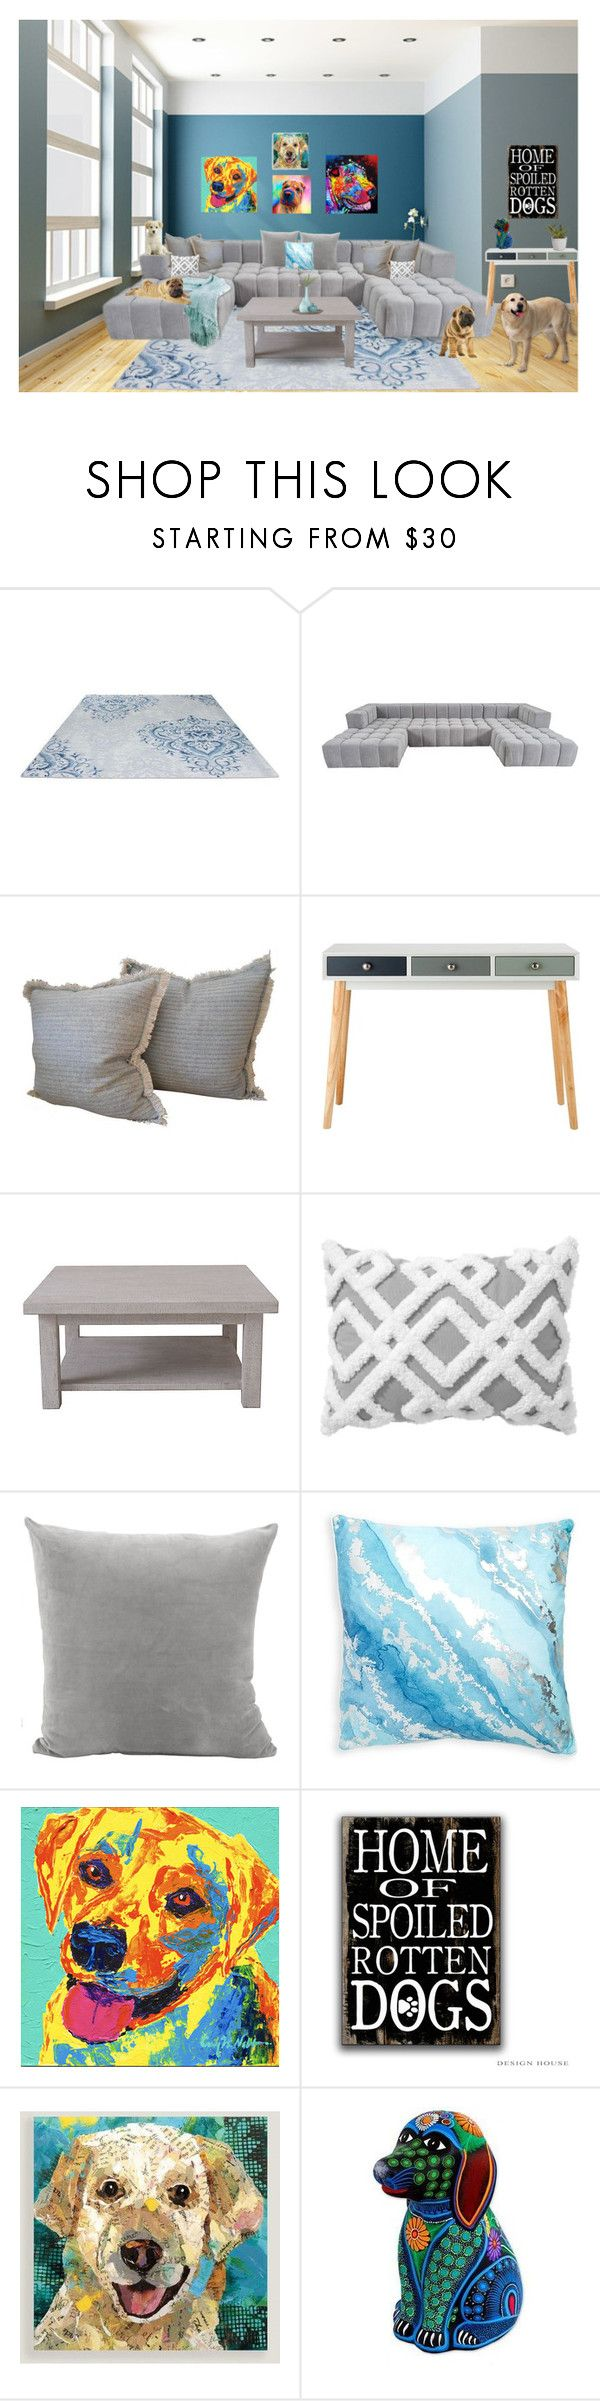 """""""Dogs always welcome"""" by rachelbarkho ❤ liked on Polyvore featuring interior, interiors, interior design, home, home decor, interior decorating, Rachel Ashwell, PBteen, Thro and Cost Plus World Market"""